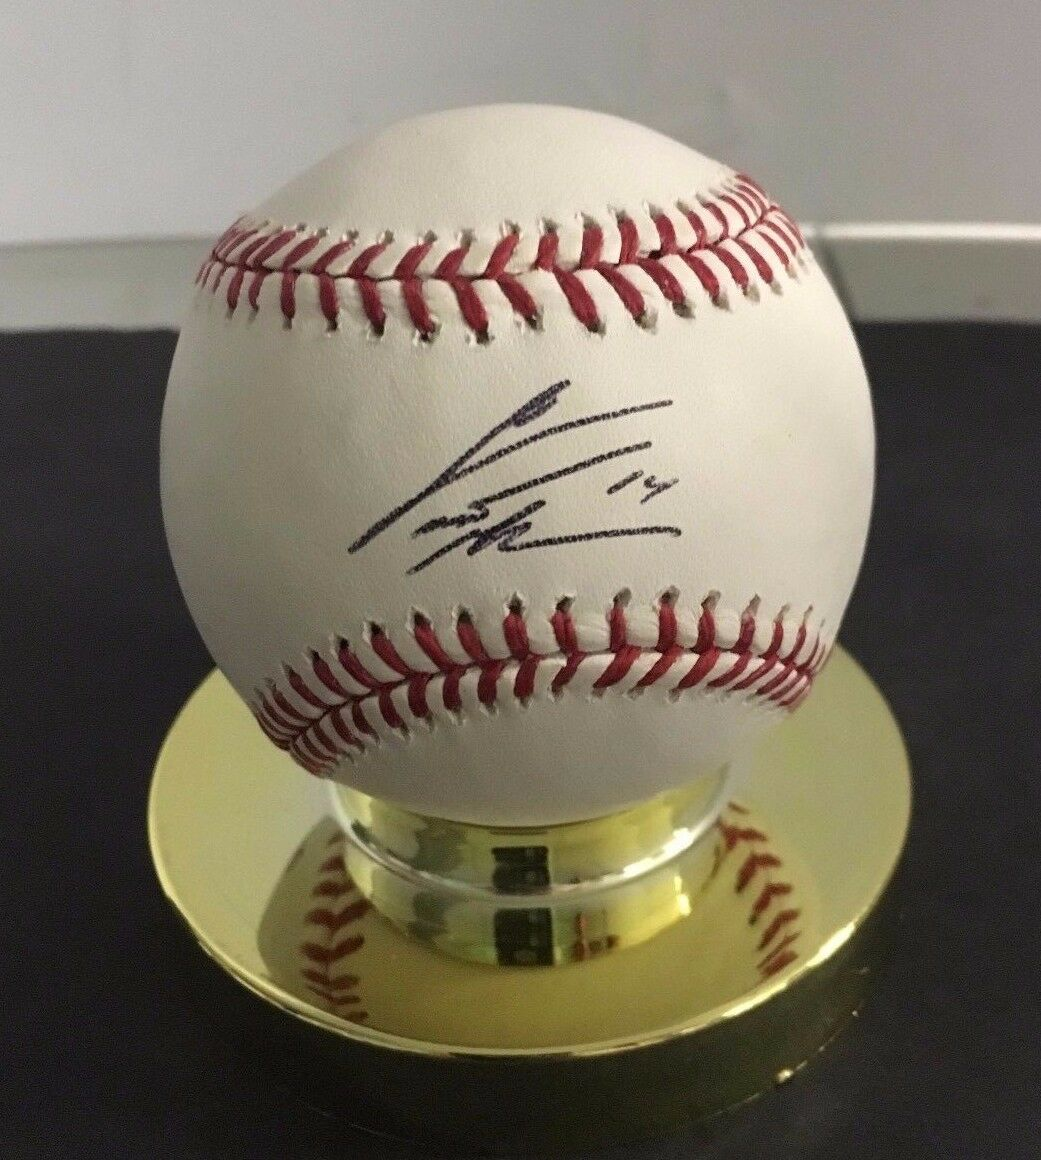 Curtis Granderson Autographed Official Rawlings Baseball MLB JSA Authenticated